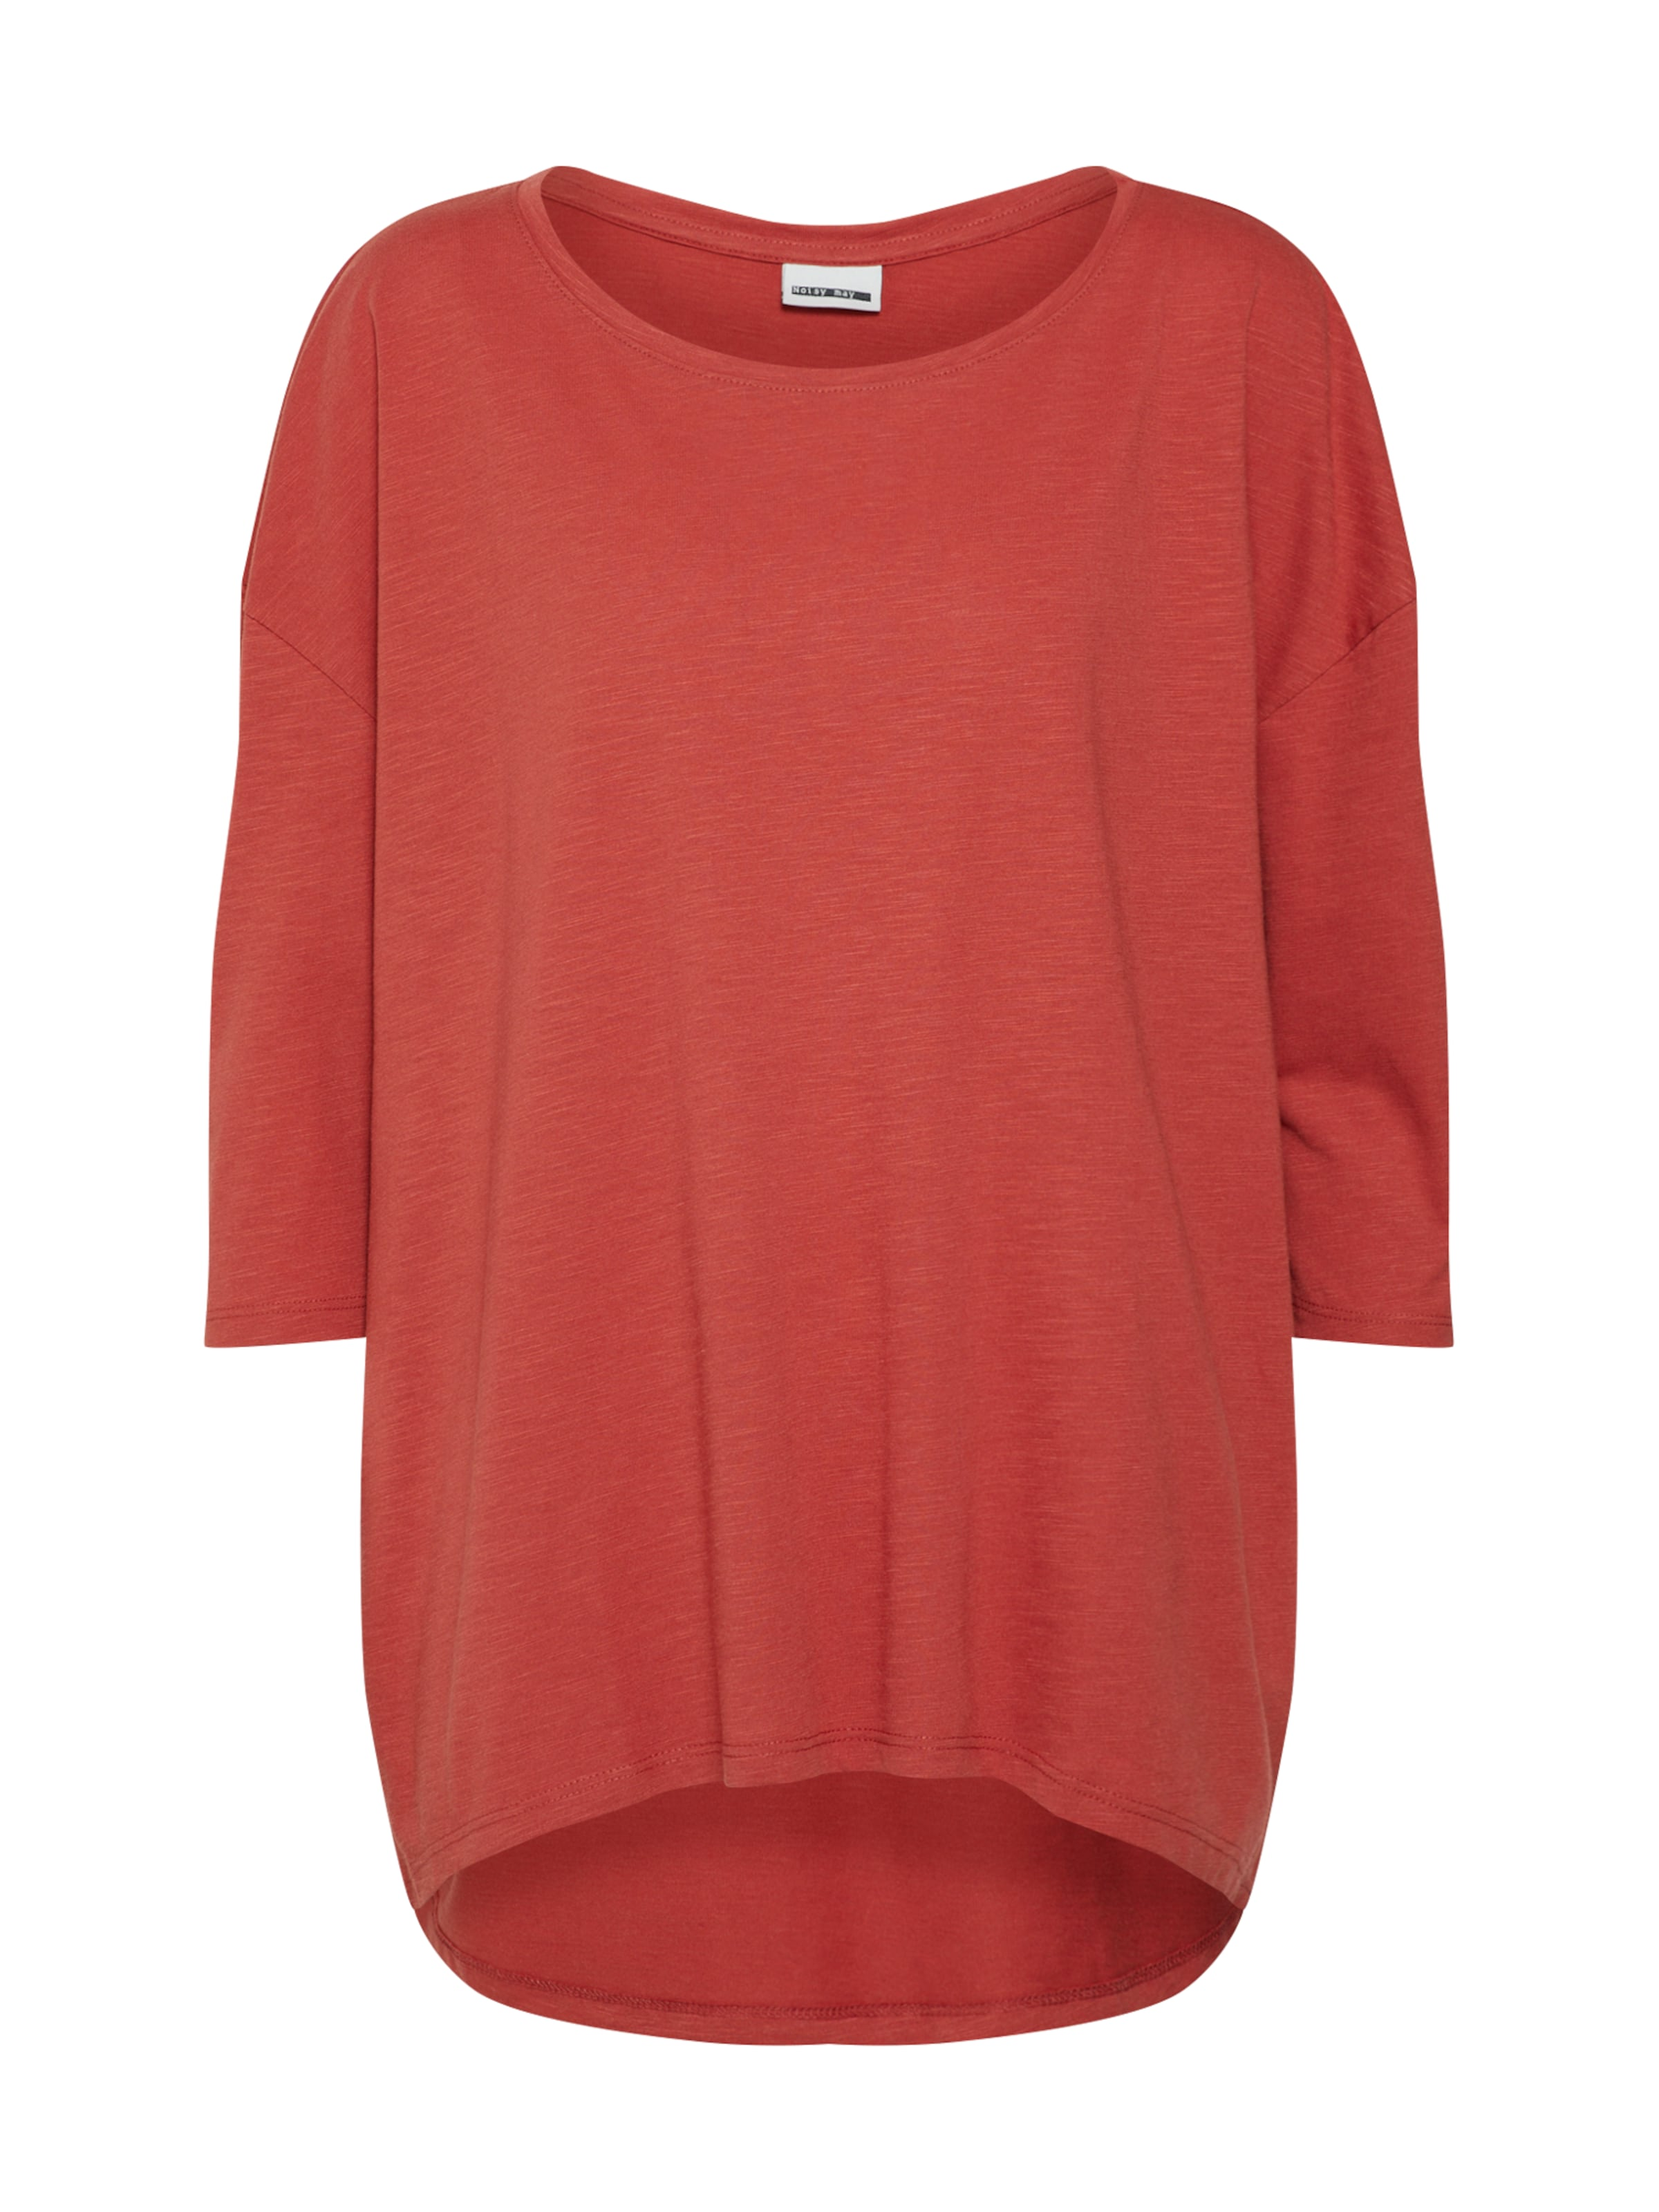 Rouge T May Rouille shirt 'mathilde' En Noisy hCxsQrdt